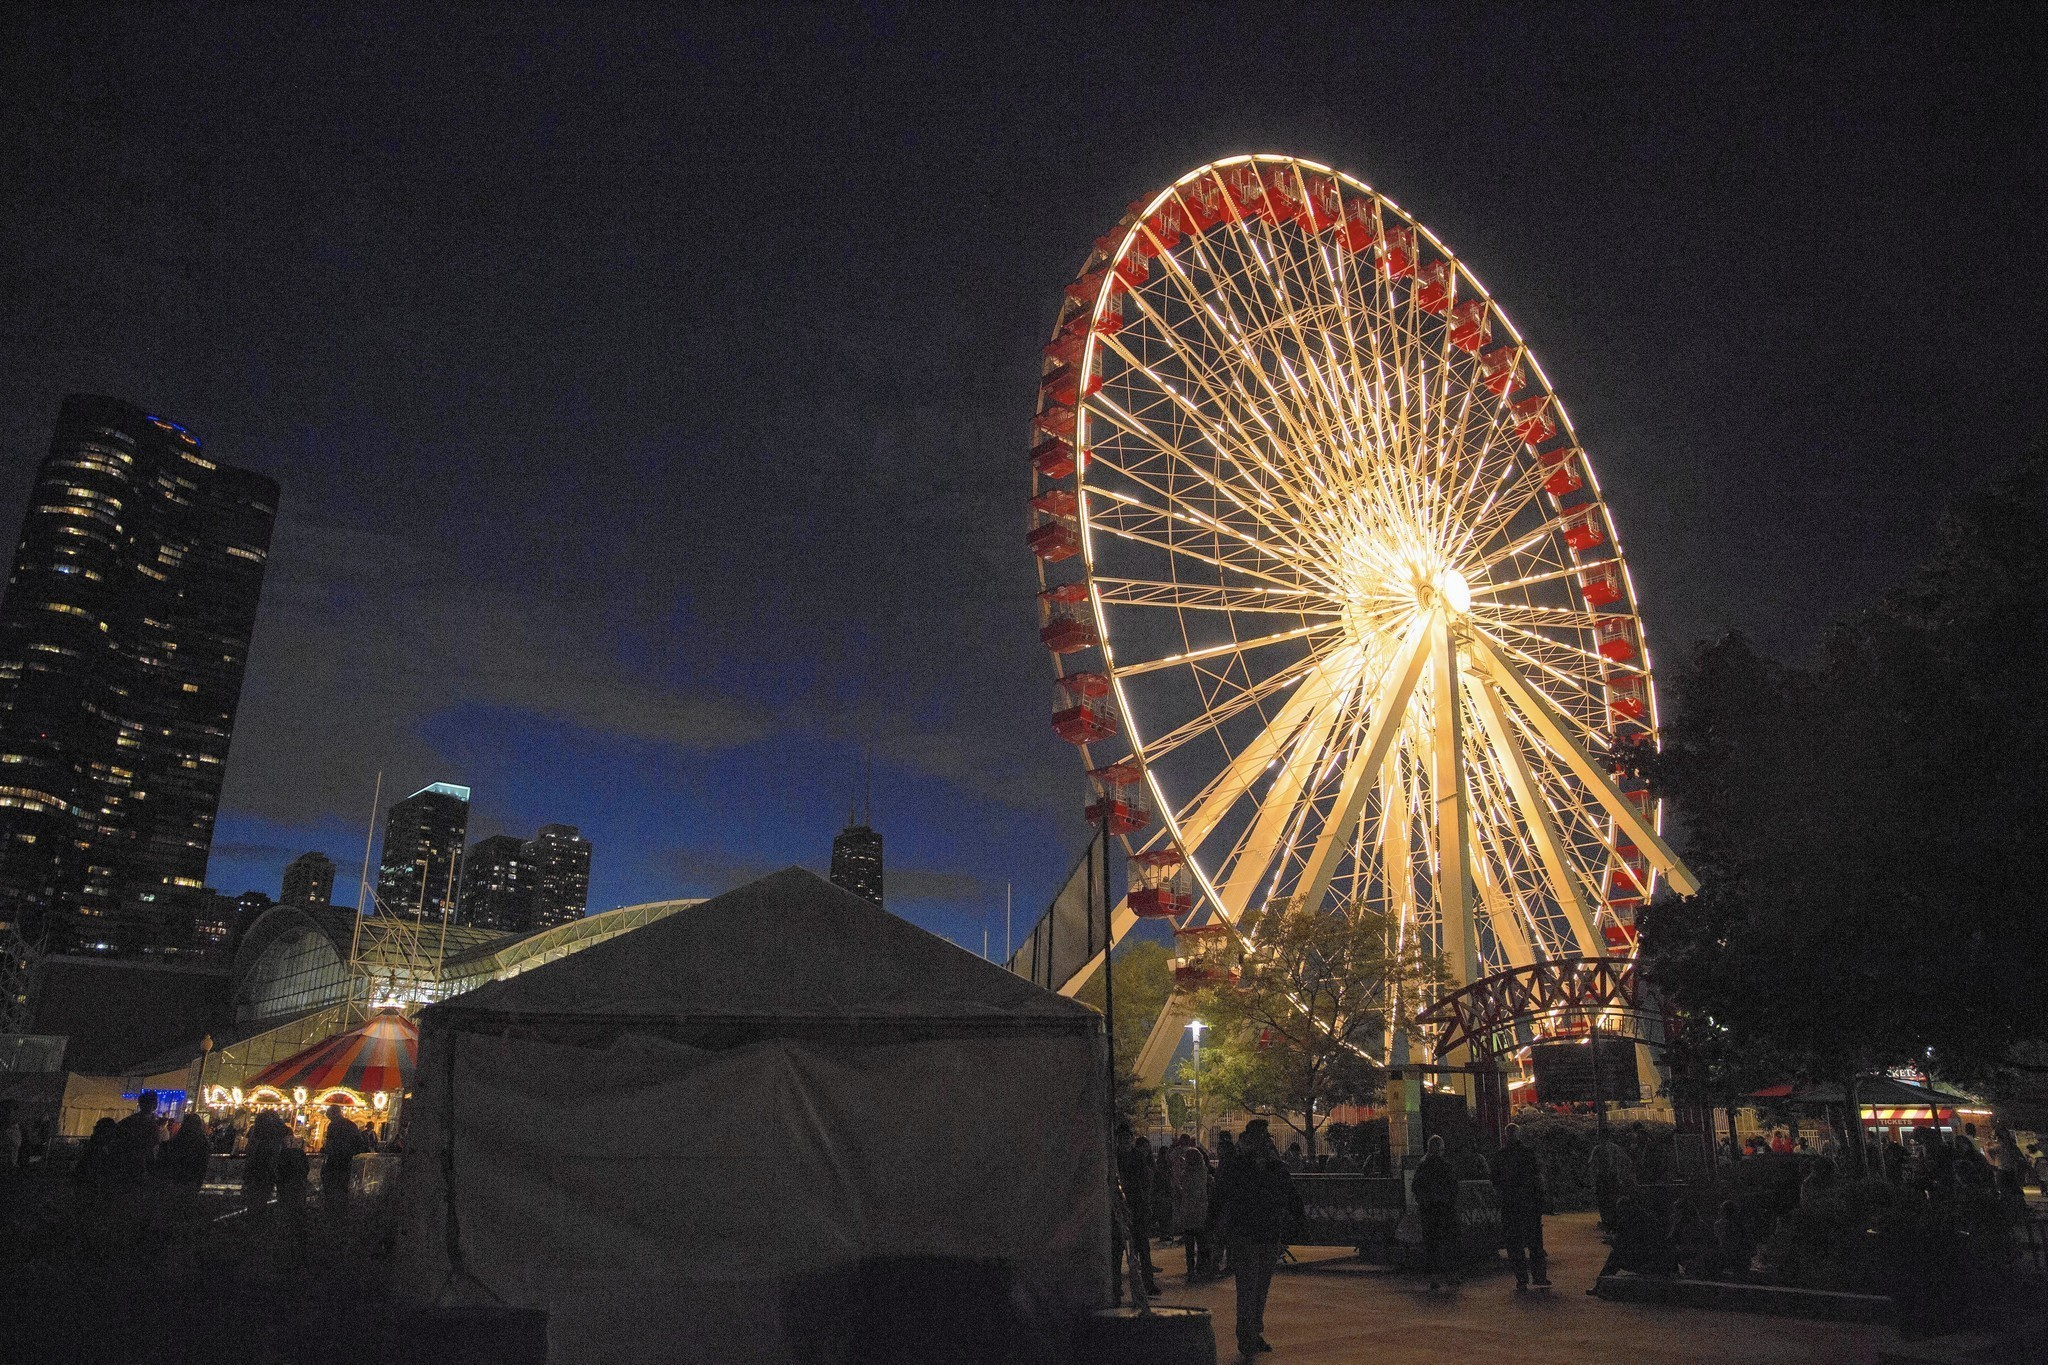 Navy Pier To Shut Down For 2 Days To Install New Ferris